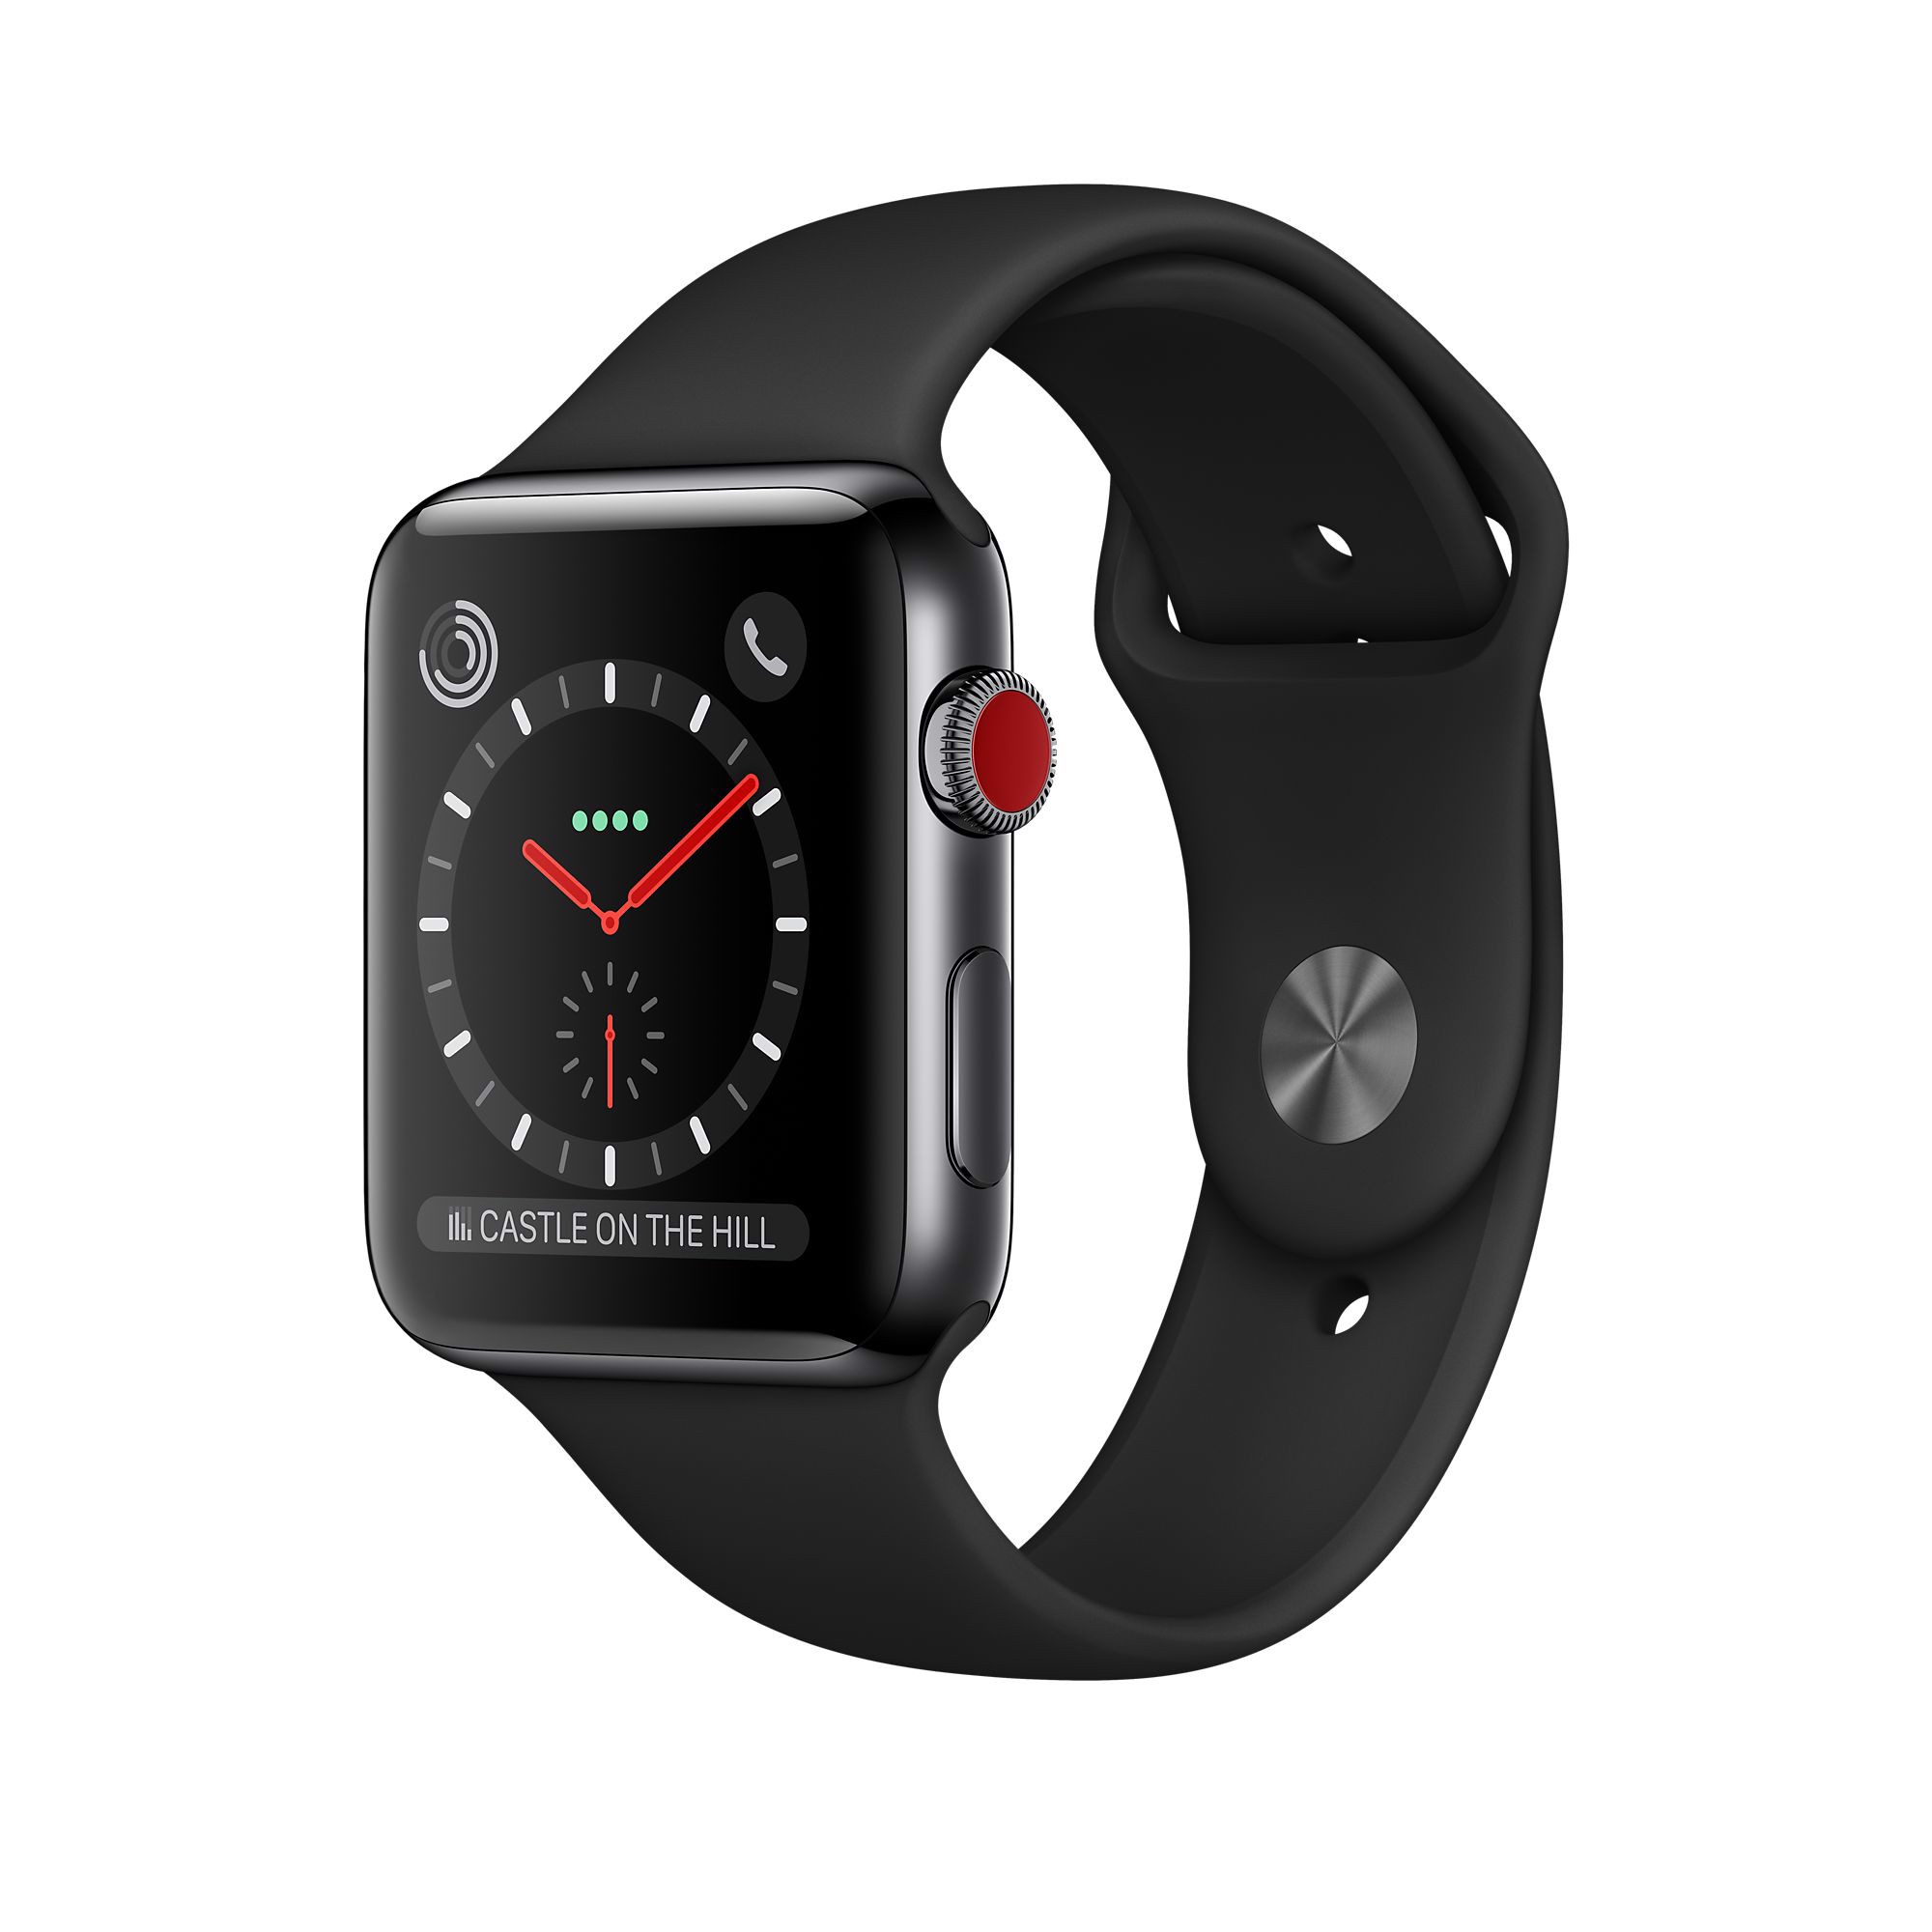 Đồng hồ Apple Watch Series 3 GPS + LTE